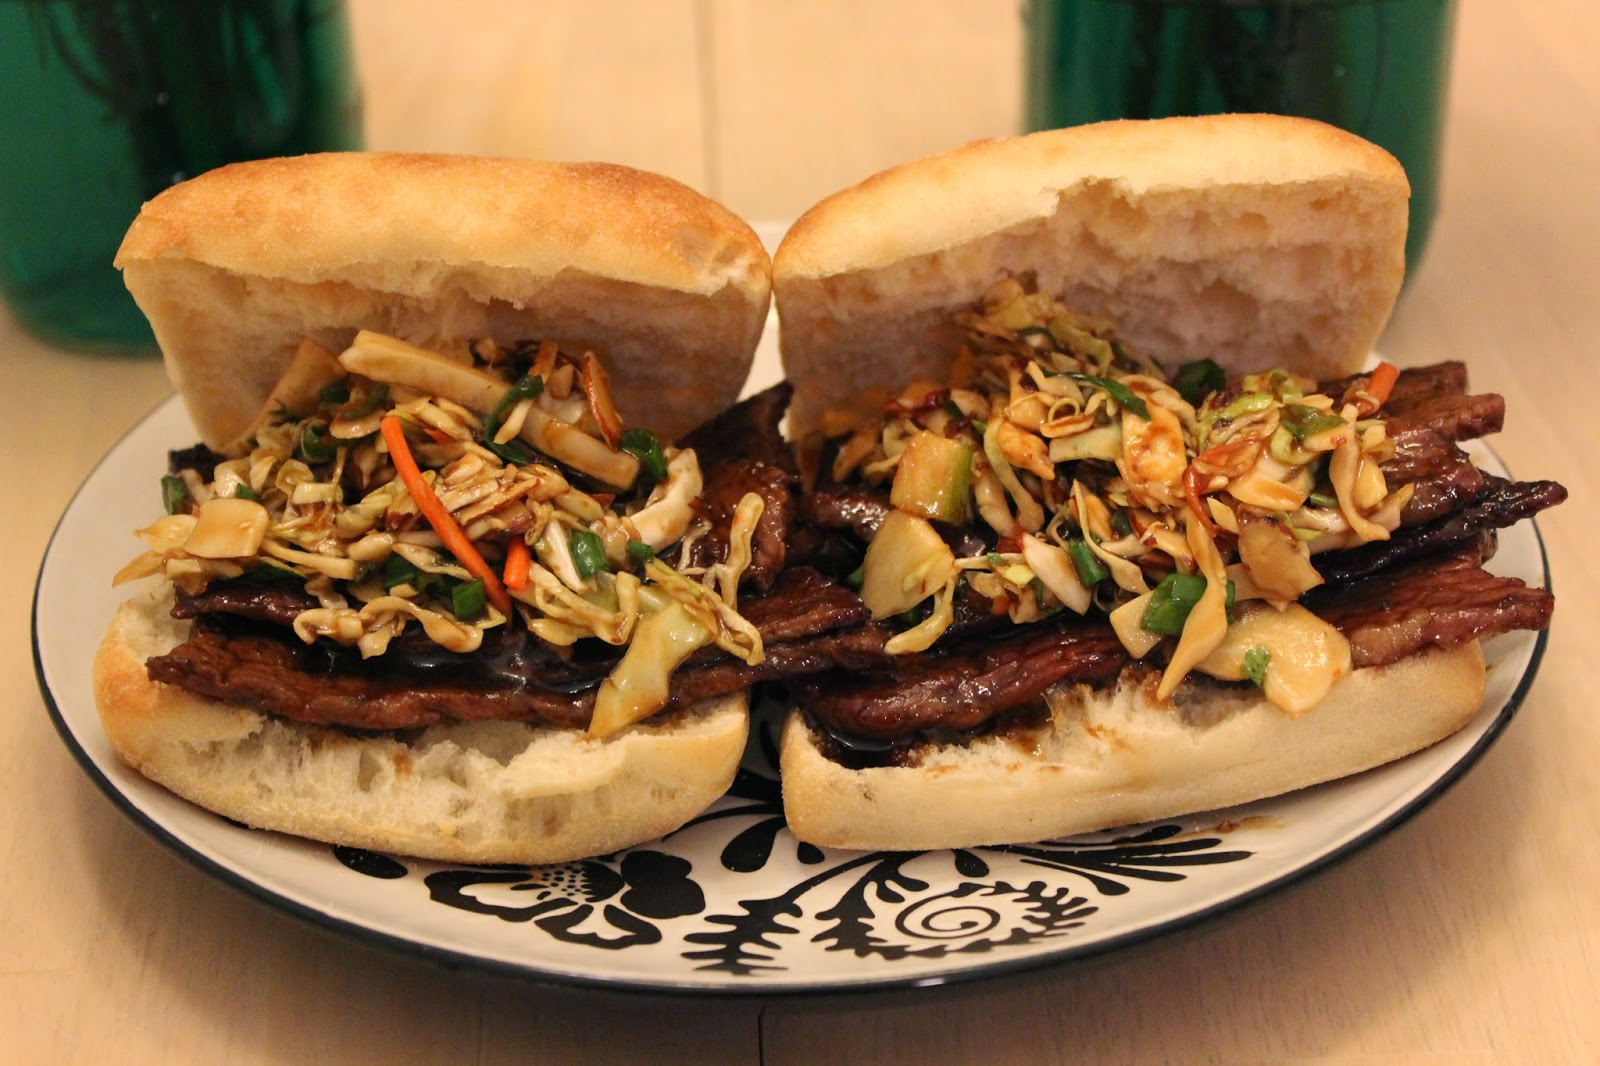 recipe, tasty tuesday, mongolian beef, p f changs, p.f. chang's, mongolian beef sandwich